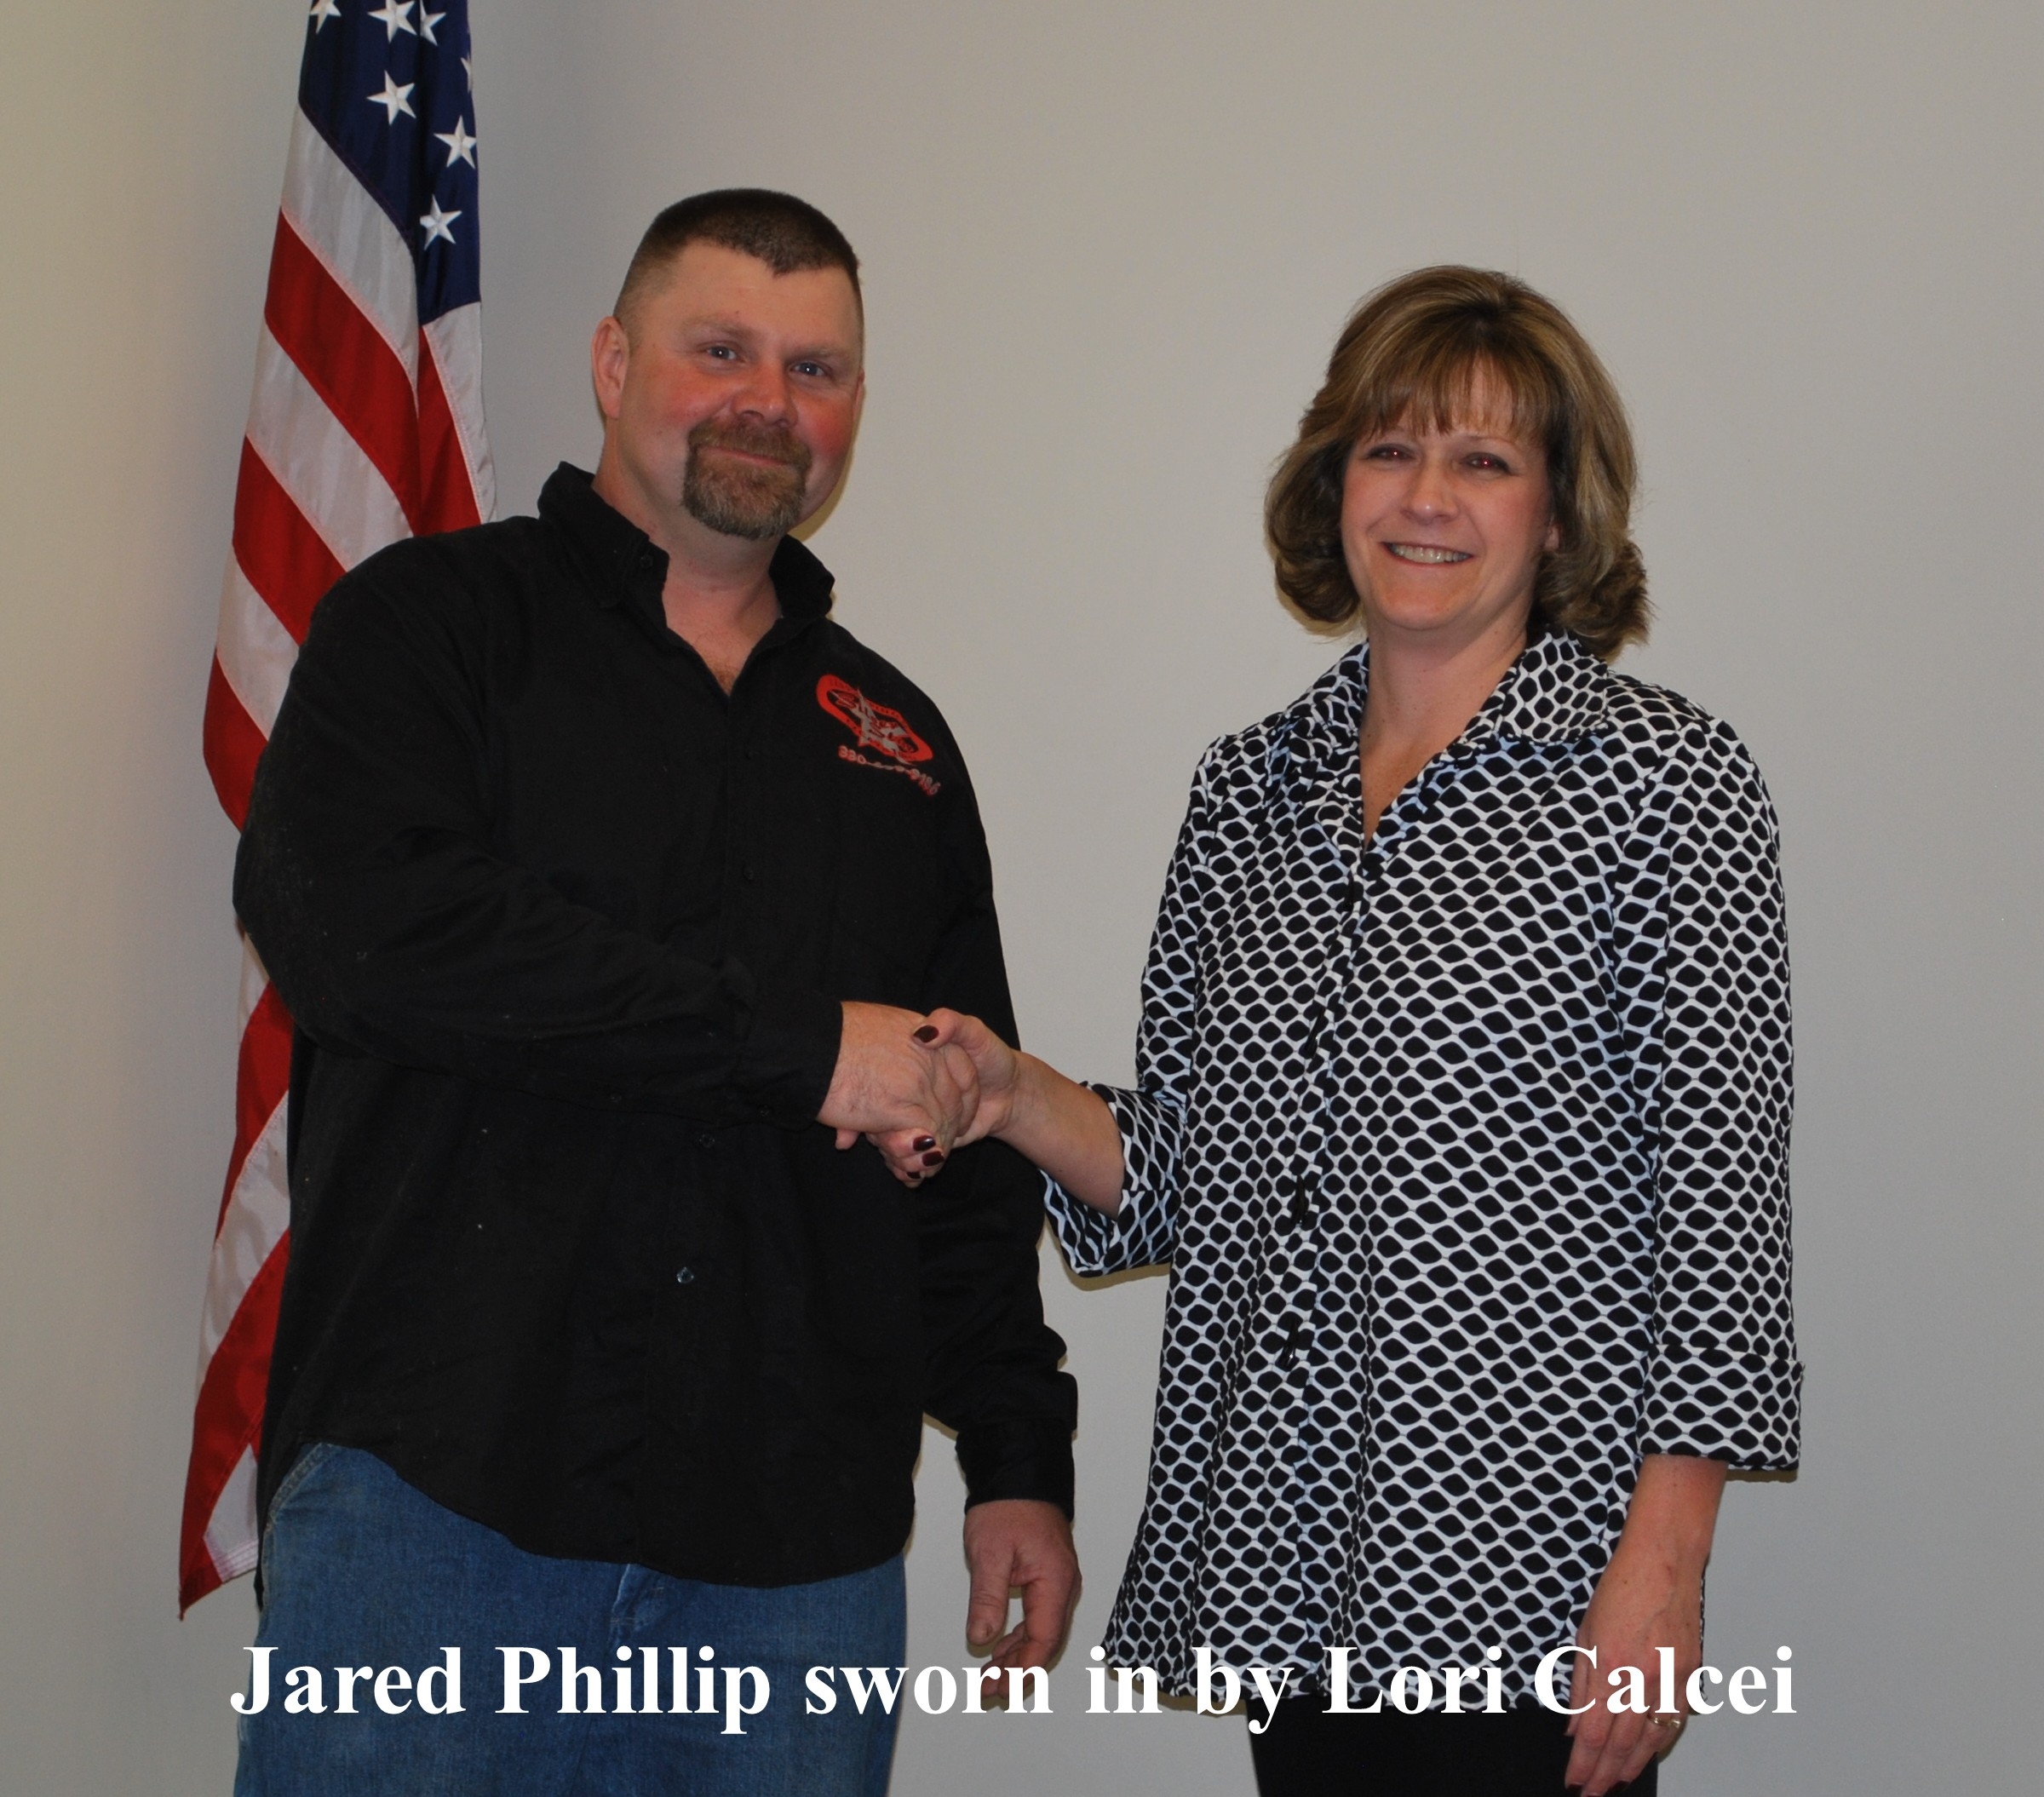 Jared Phillip sworn in by Lori Calcei 12 29 2017